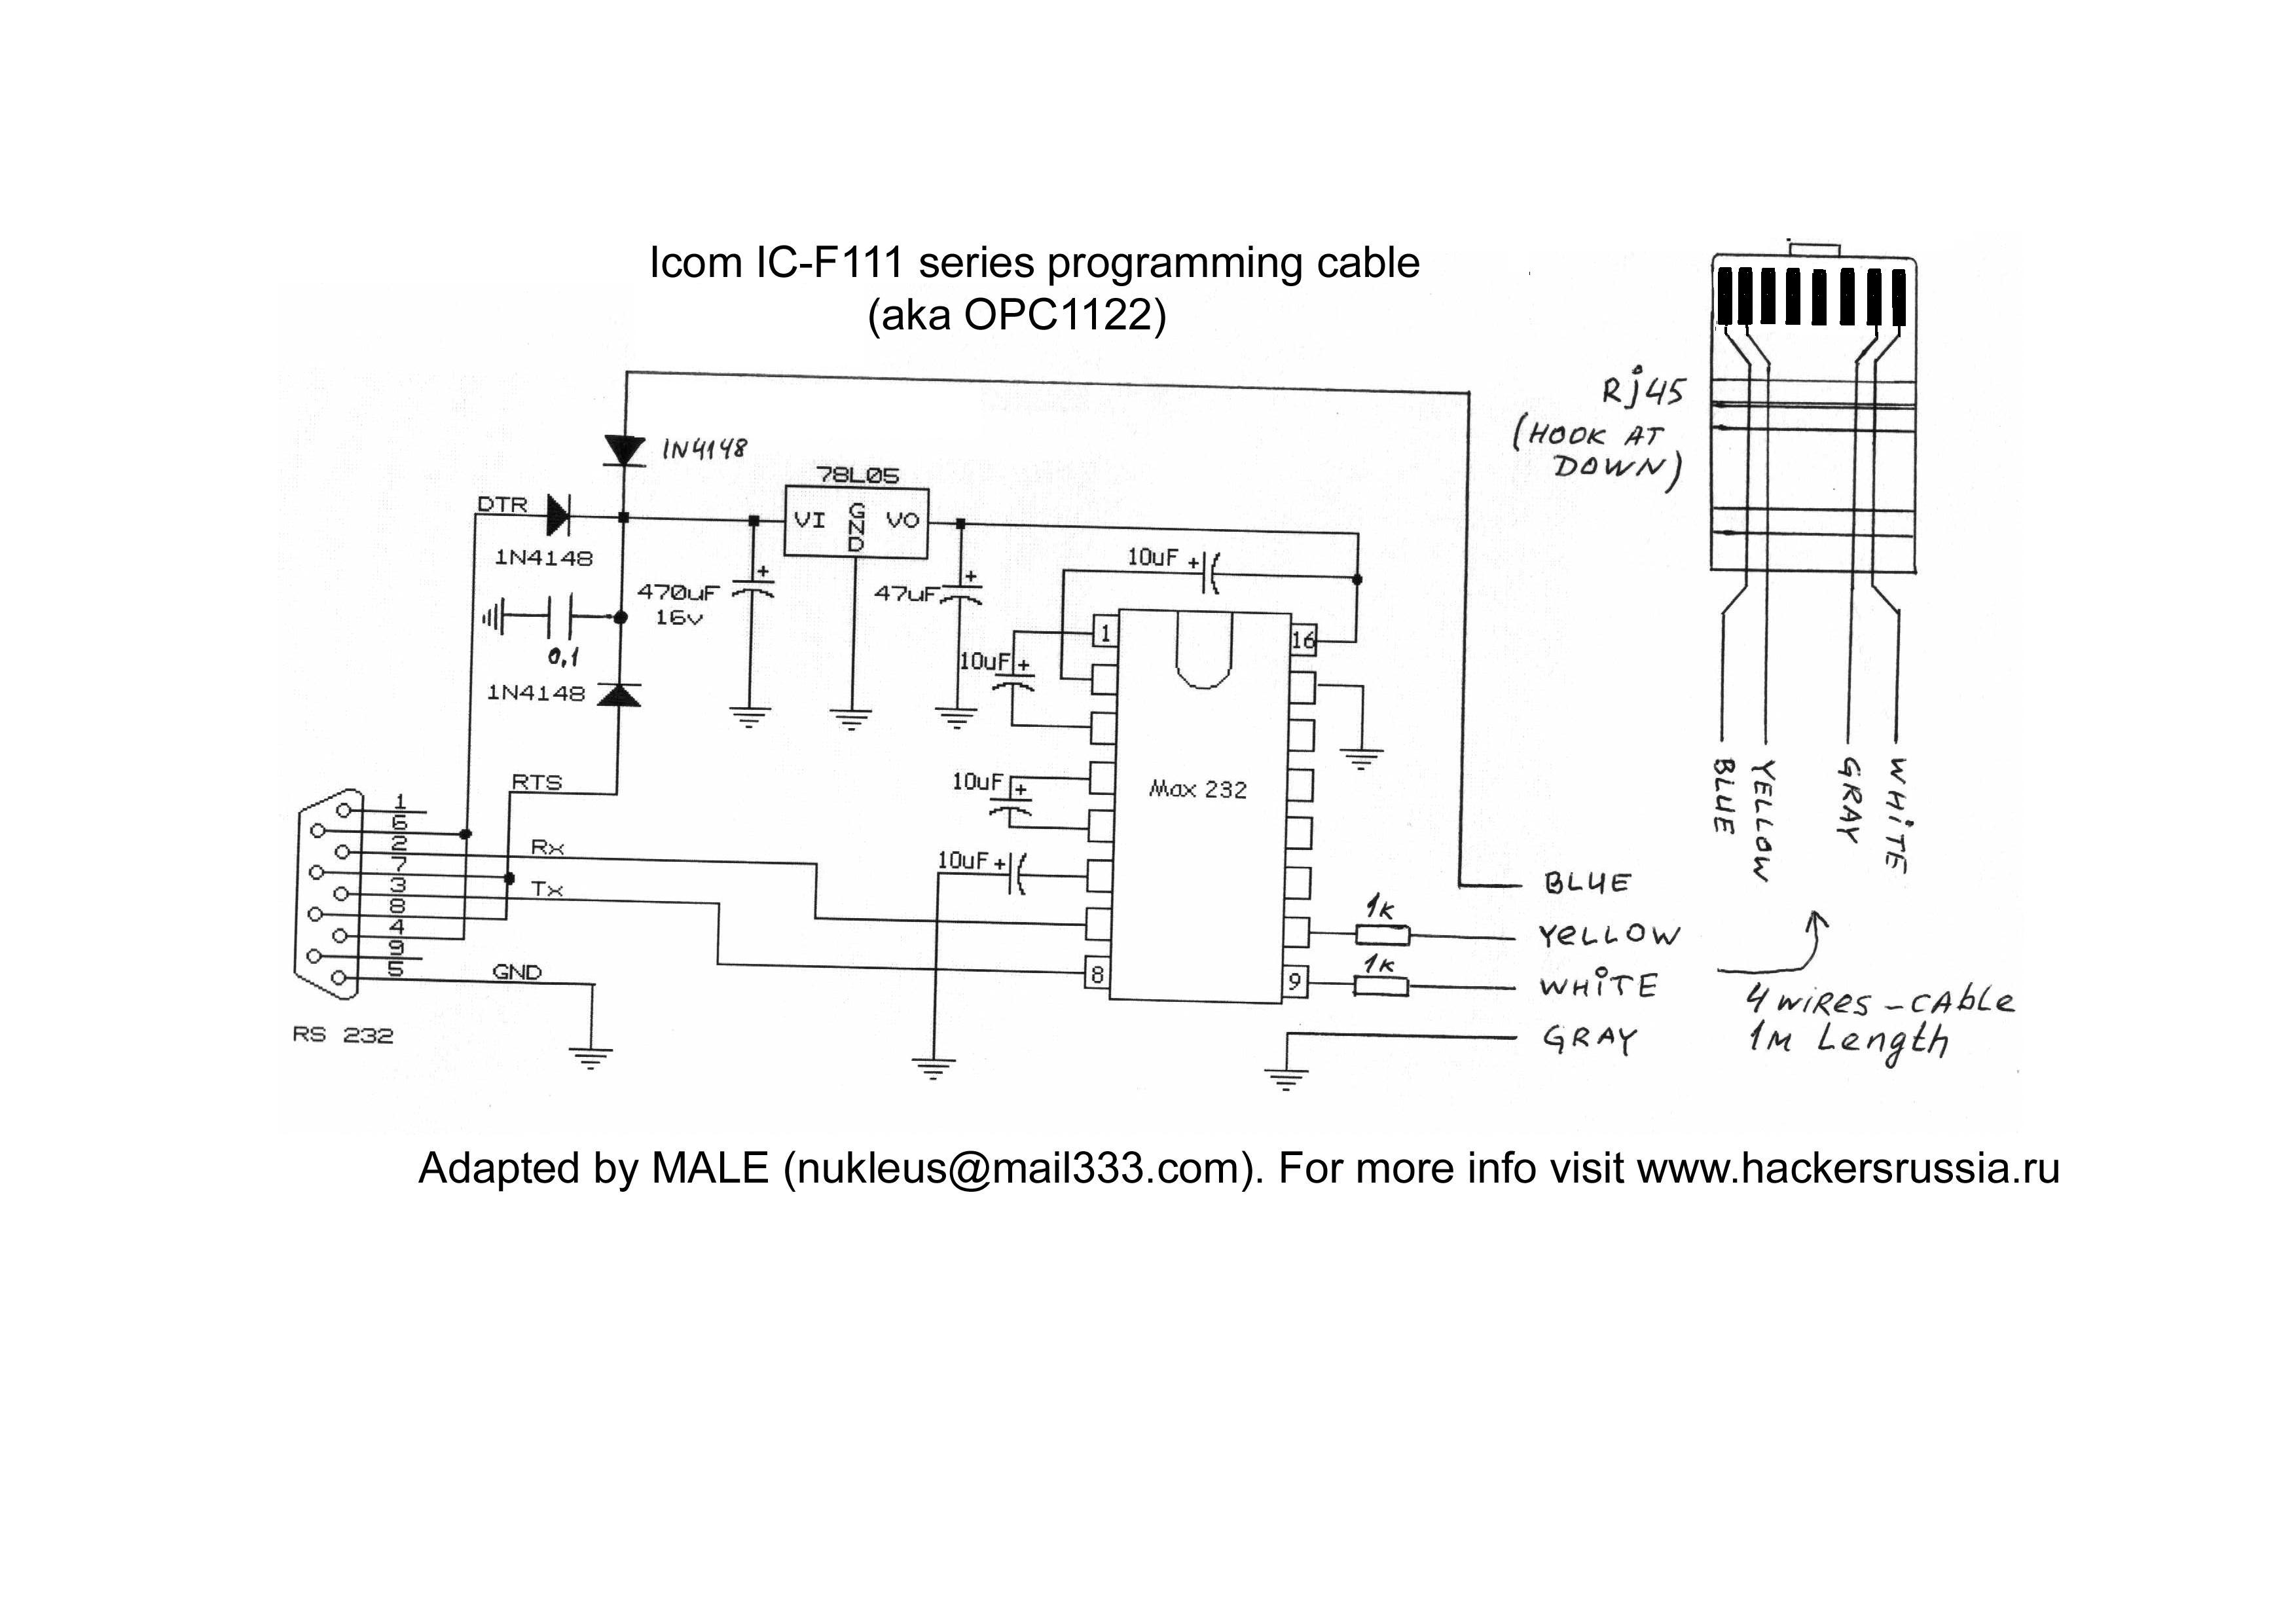 Icom Wiring Design Software Ware Opc1122 Schematic This Cable Need To Program Ic F100 Series Mobiles